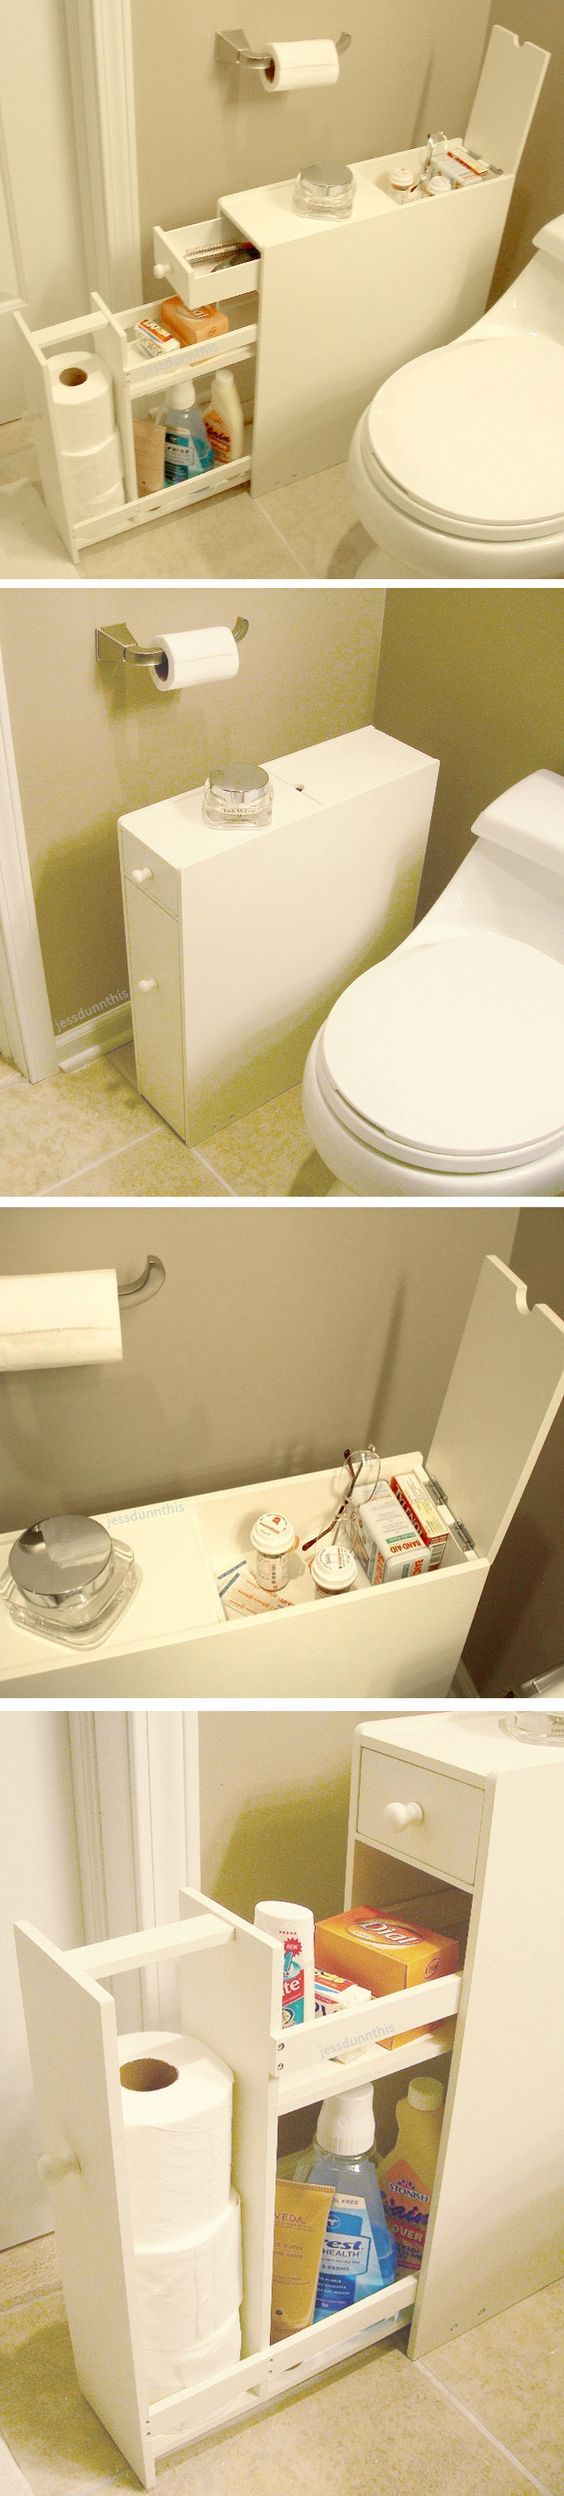 Best 25 Bathroom Space Savers Ideas Only On Pinterest